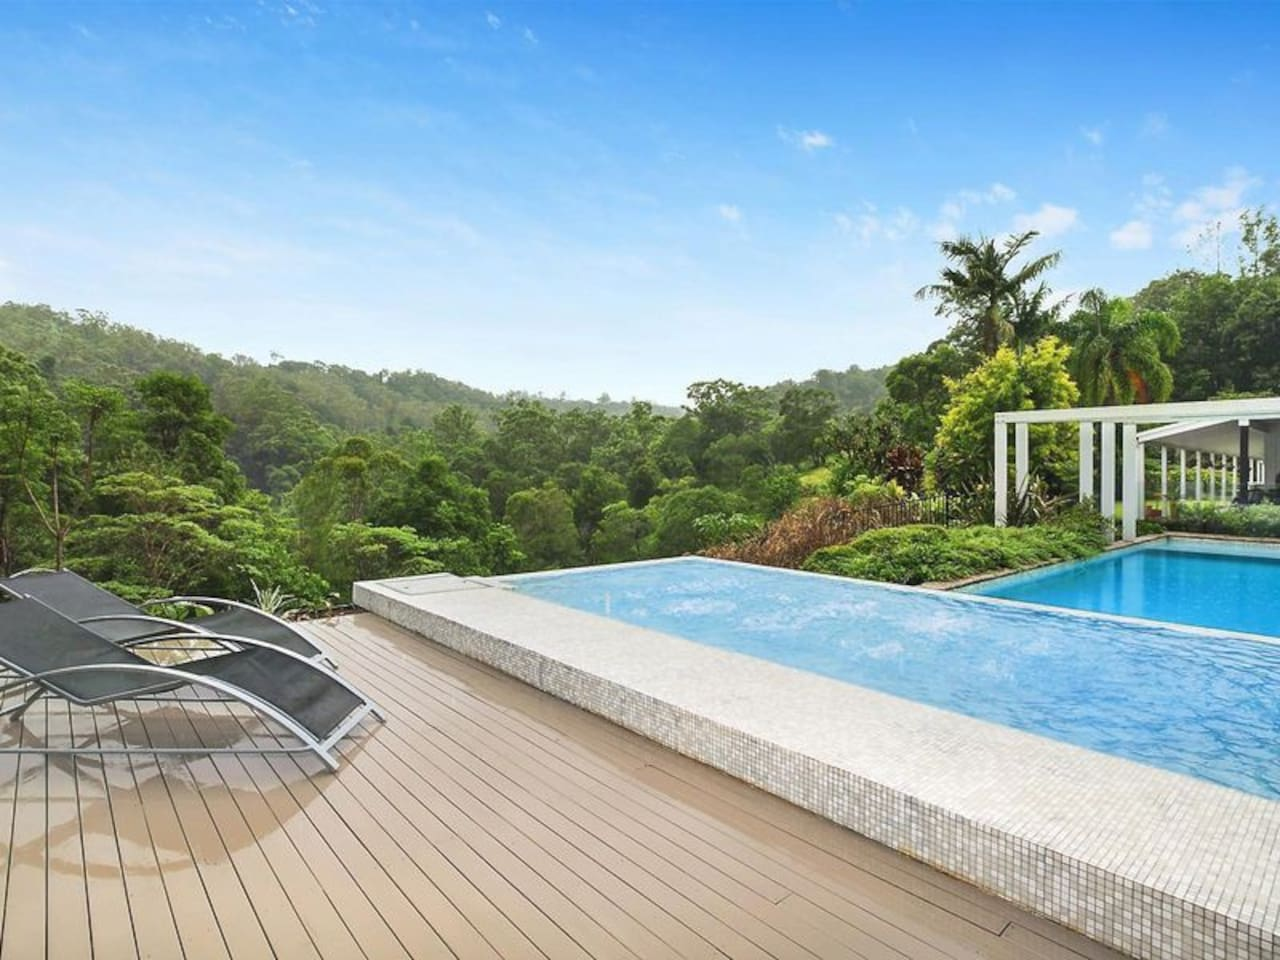 Escape to the Pool House at Flaxton